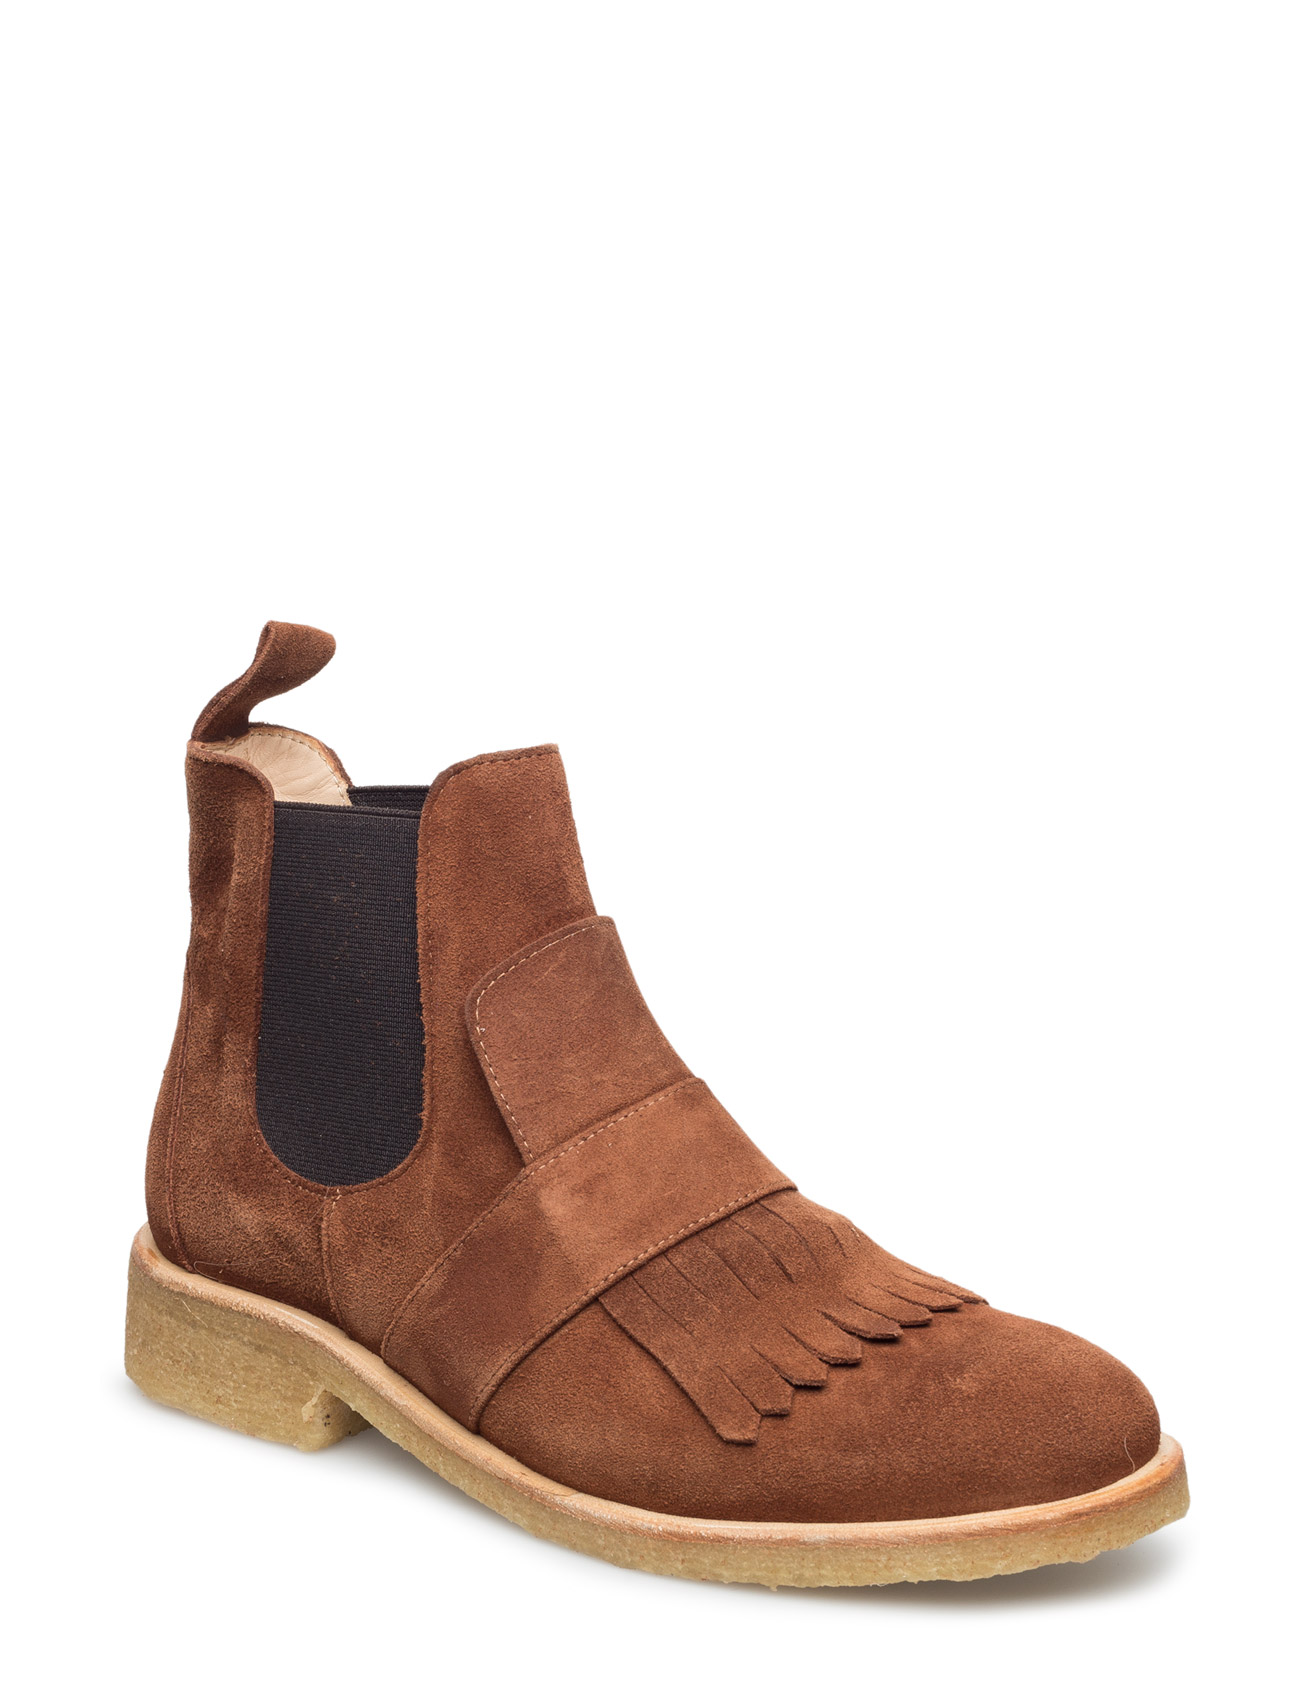 Image of Booties - Flat - With Elastic Shoes Boots Chelsea Boots Ankle Boot - Flat Brun ANGULUS (3452075711)